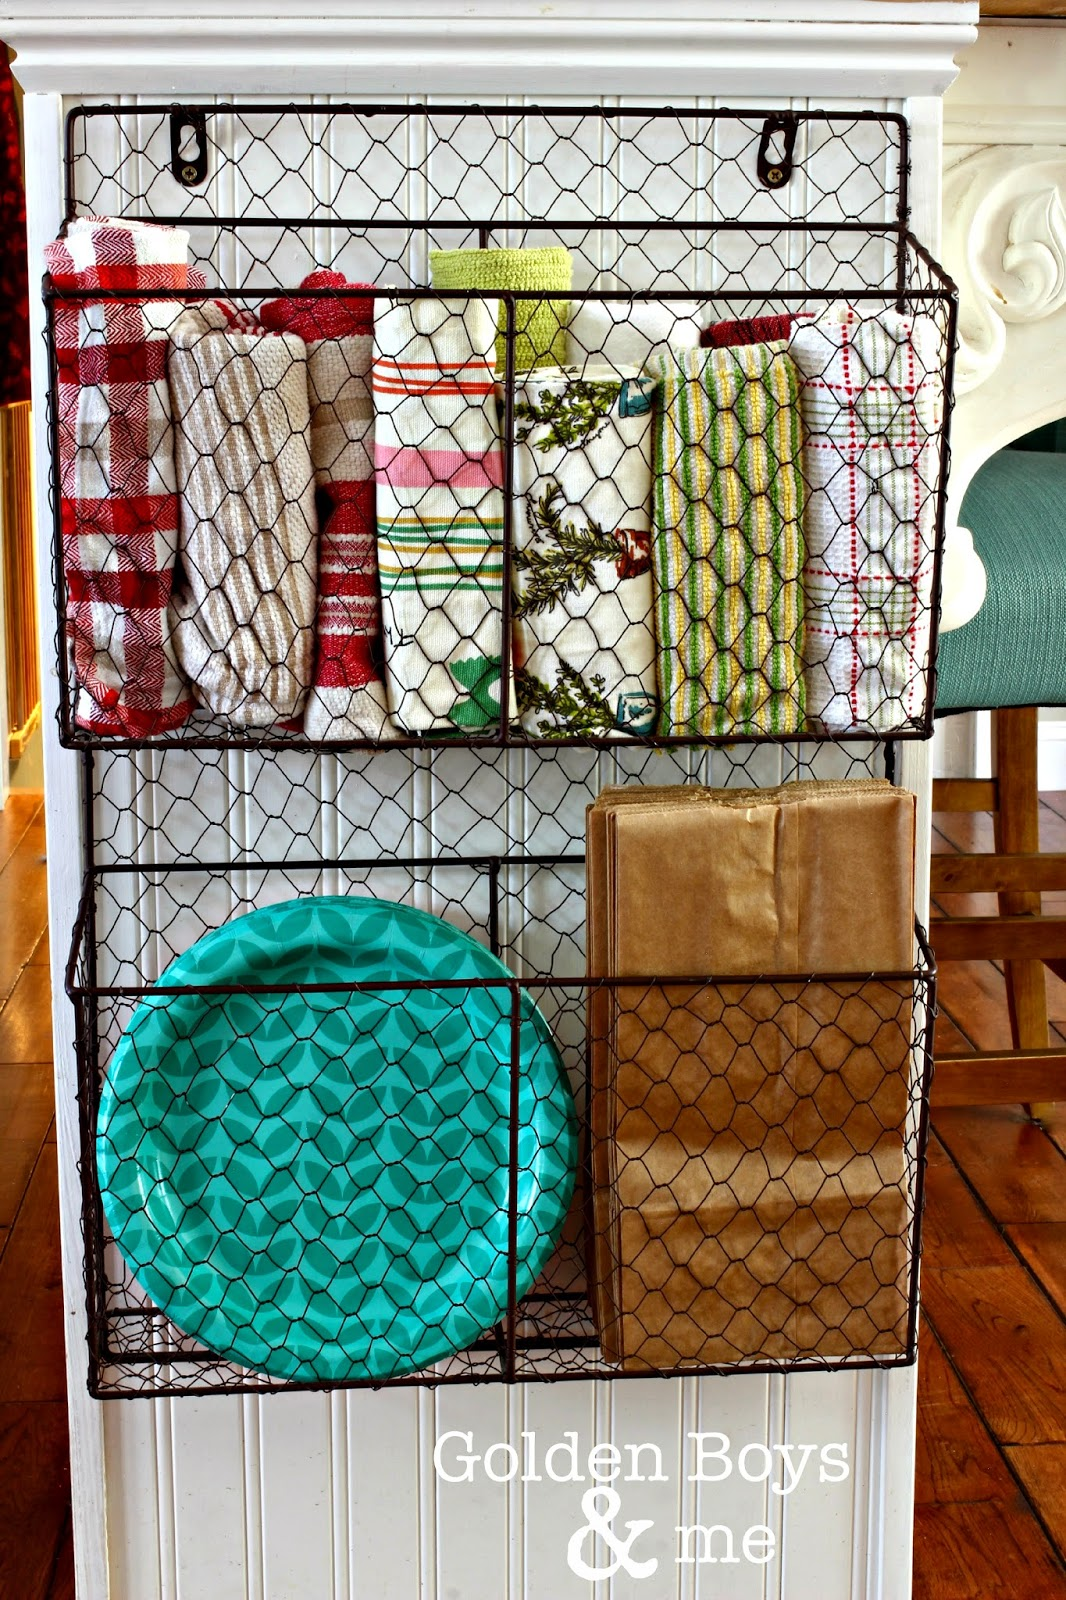 Wire Baskets on the Sides of Cabinets to Store Items